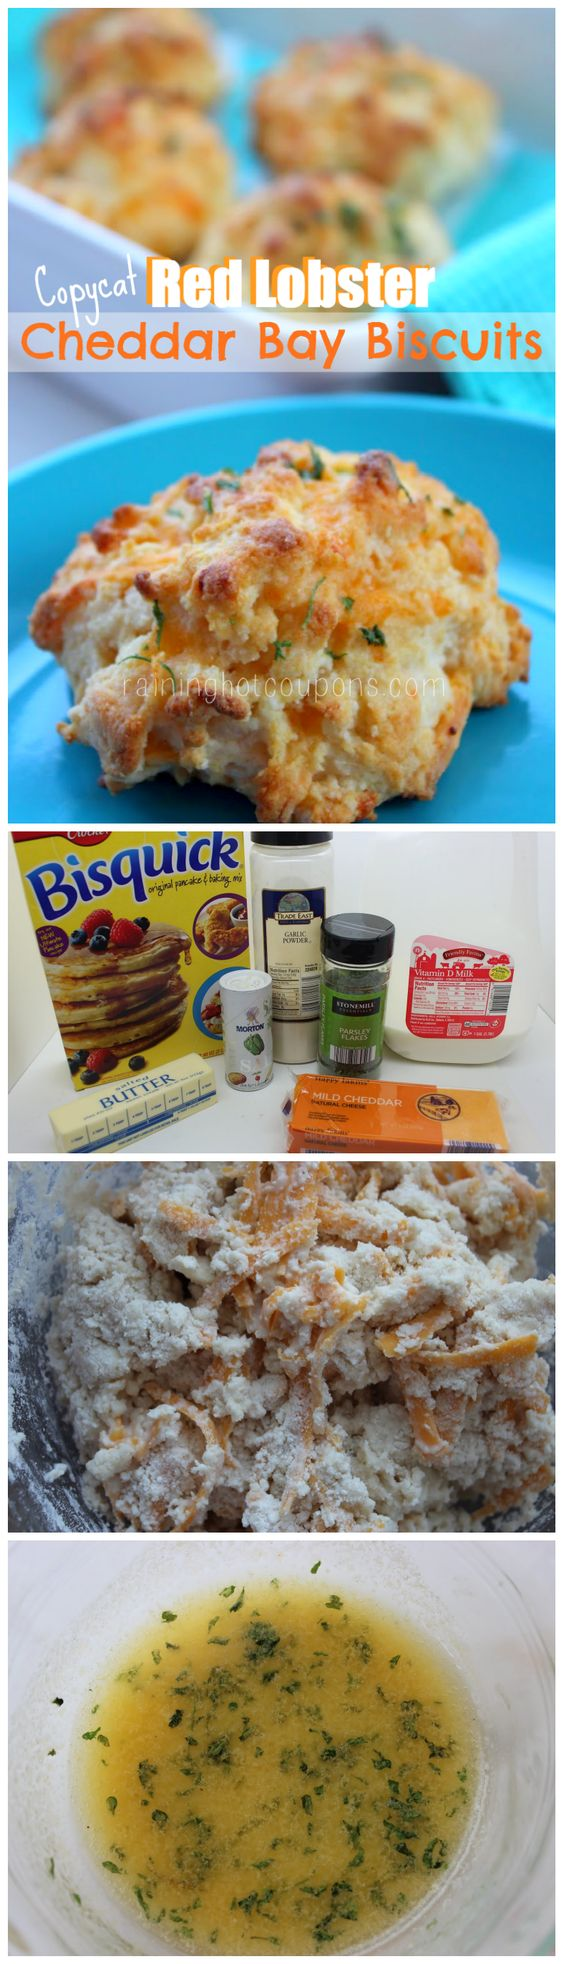 red lobster biscuits collage.png Copycat Red Lobster Cheddar Bay Biscuits